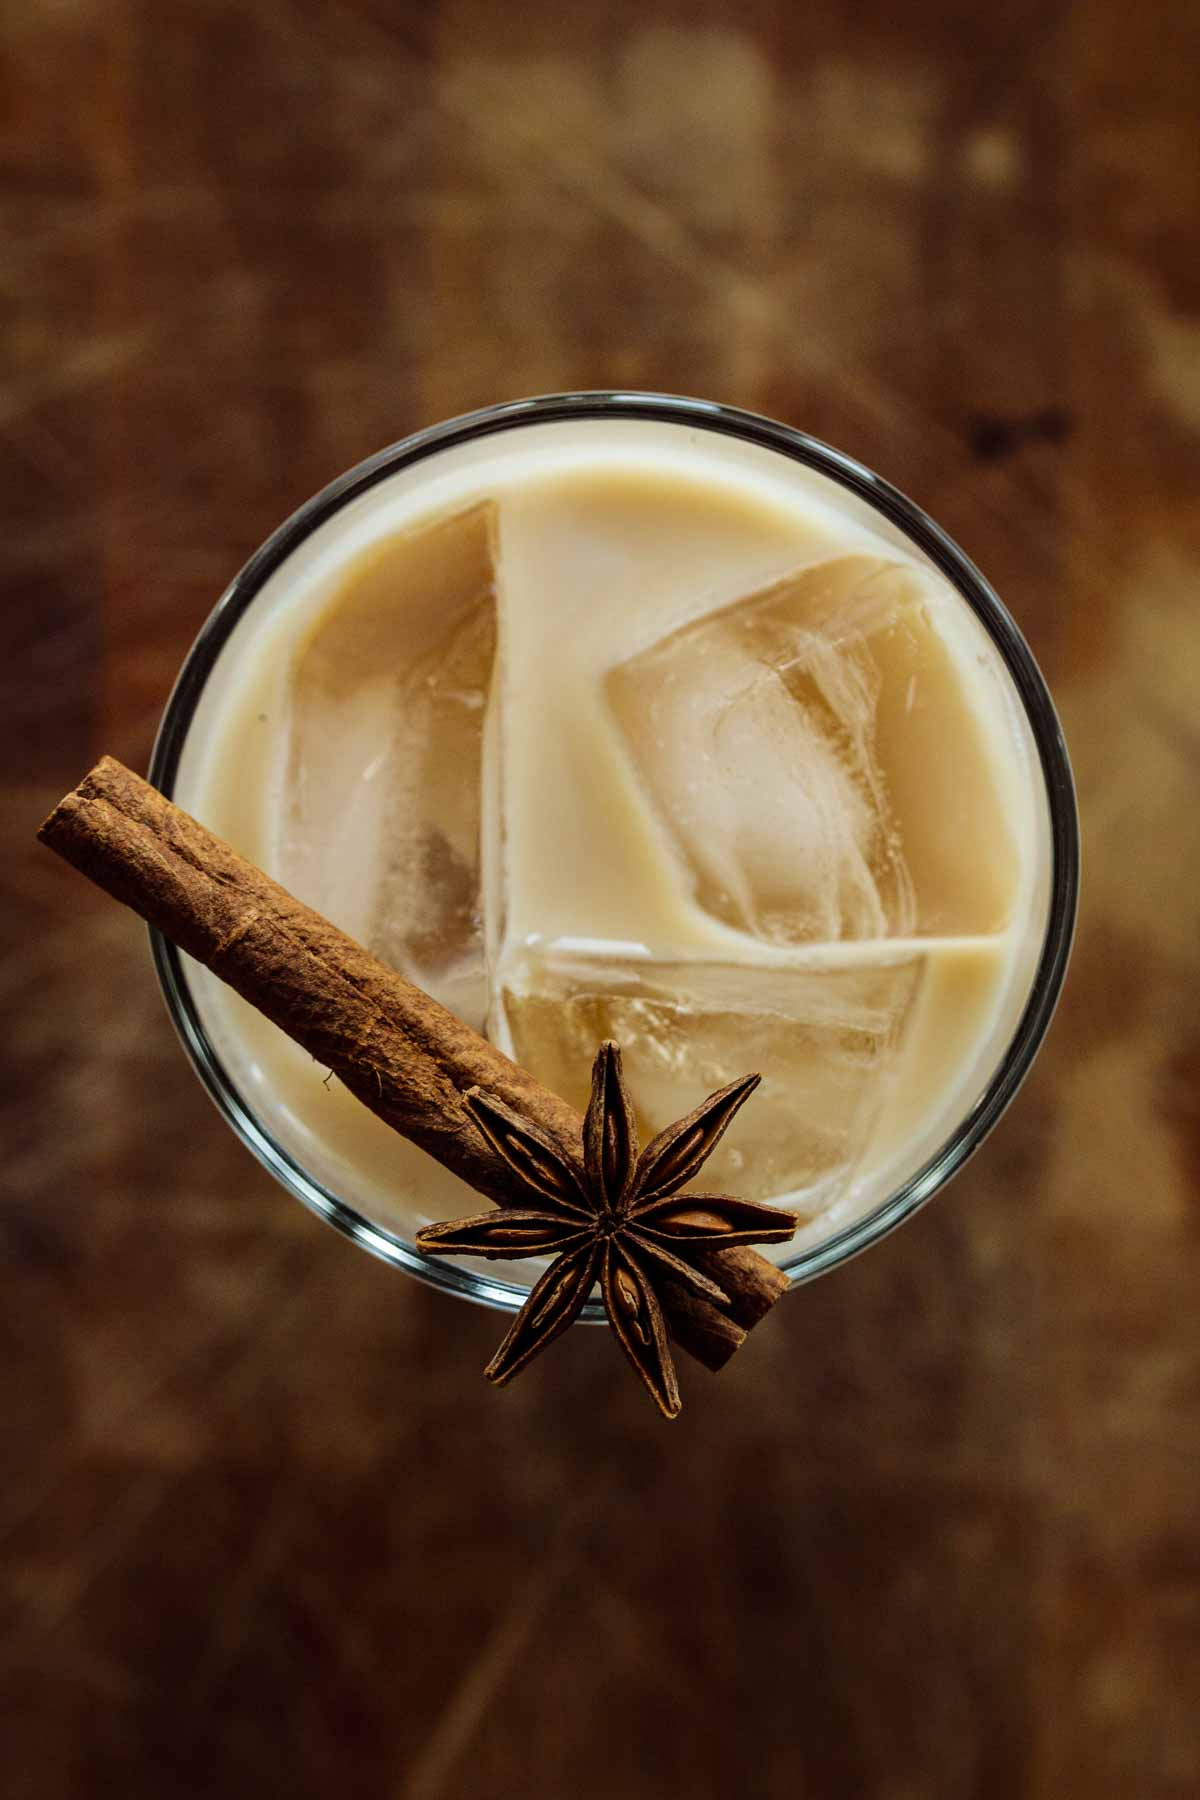 Beverage seen from above, with a cinnamon stick and star anise on the edge of the glass.